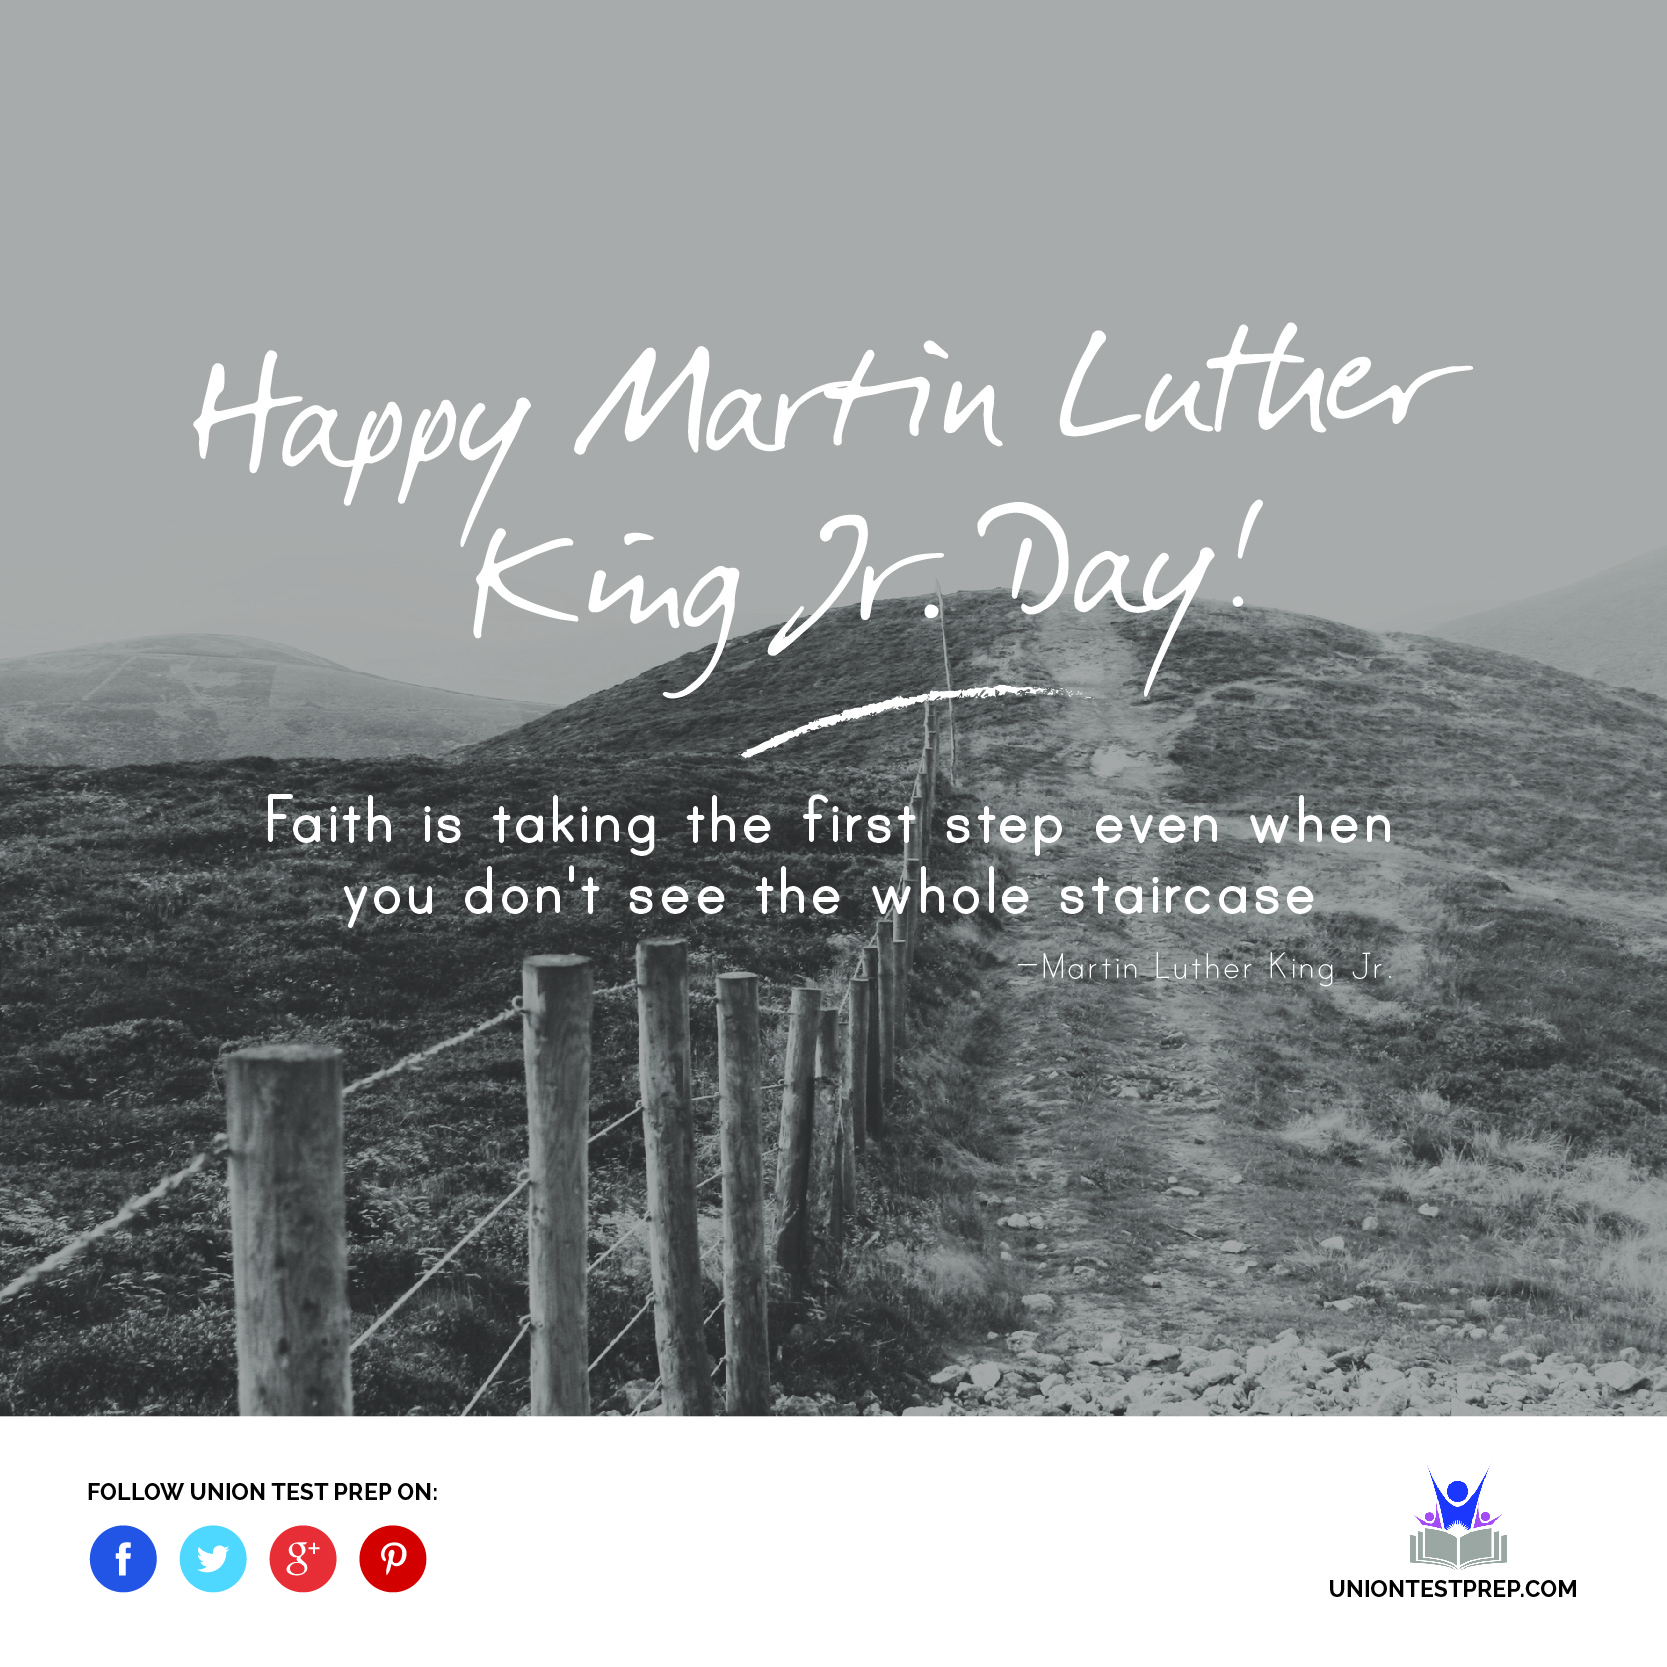 Quote from Martin Luther King Jr. about faith